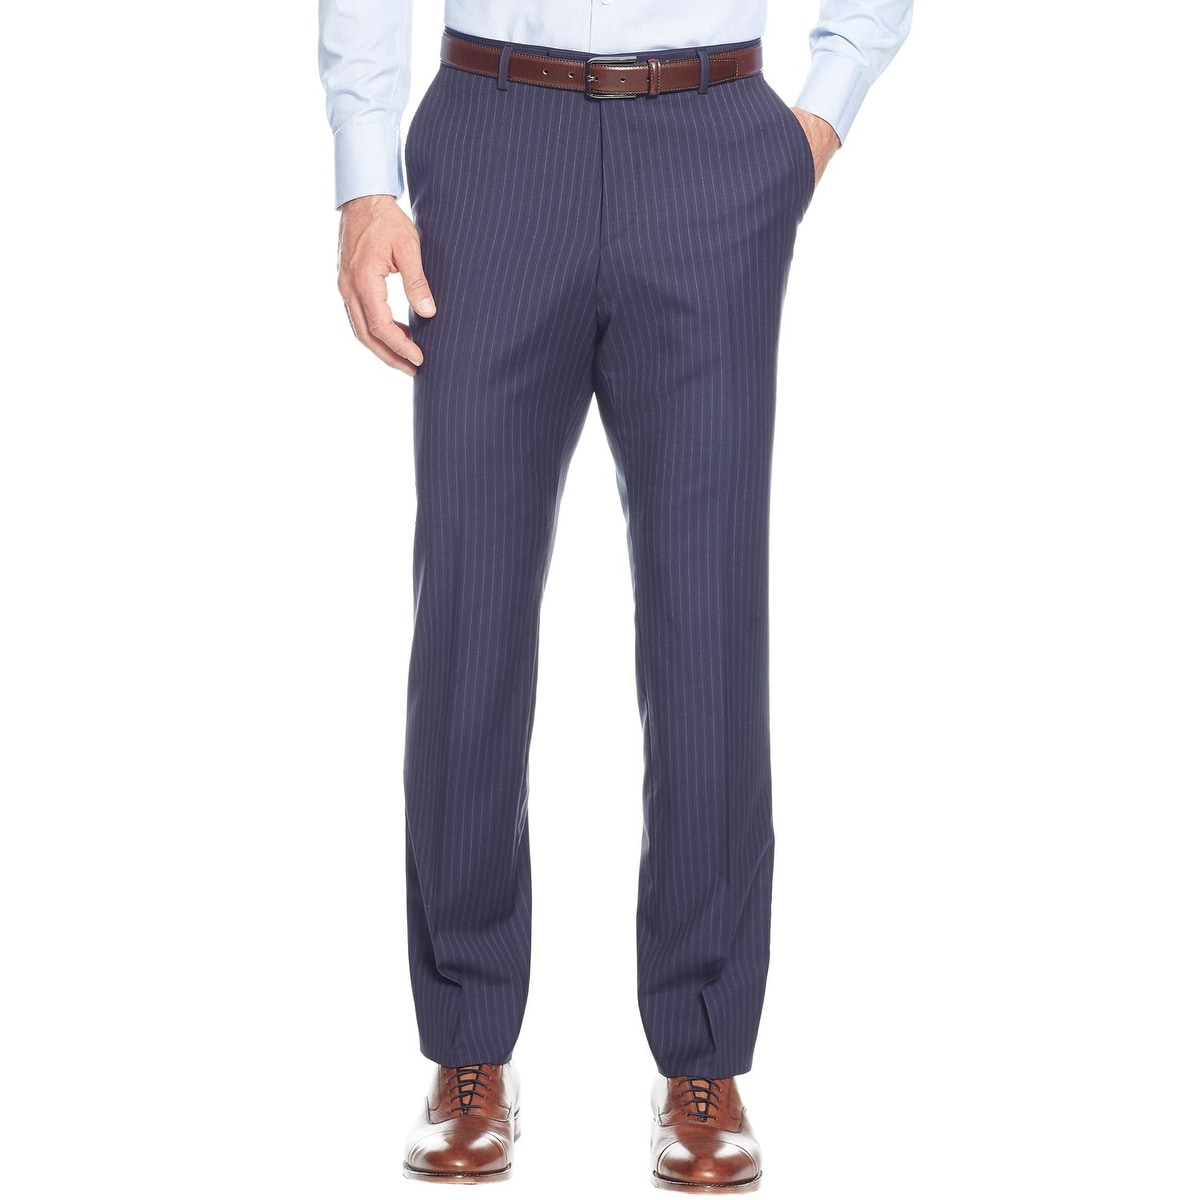 8c1590ee2 Shop Hugo Boss Mens Johnston/Lenon Regular Fit Wool Stripes Navy Suit 48R  Pants 42W - Free Shipping Today - Overstock - 24031687